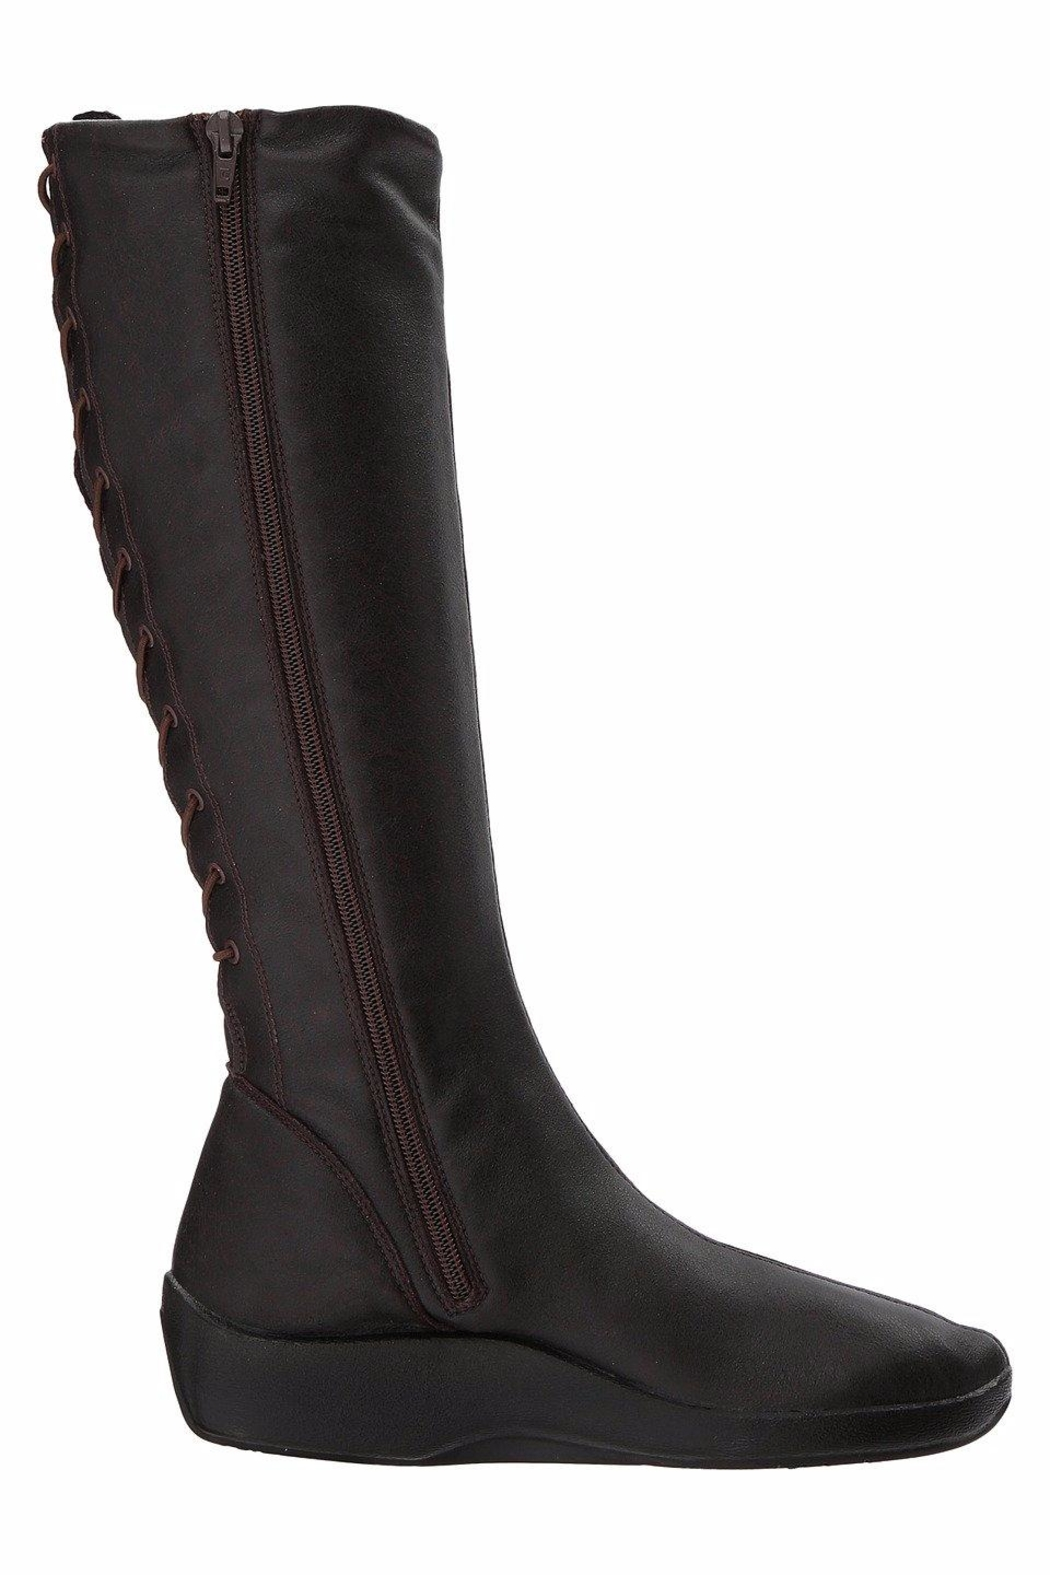 Arcopedico Lytech Comfort Tall-Boot - Side Cropped Image